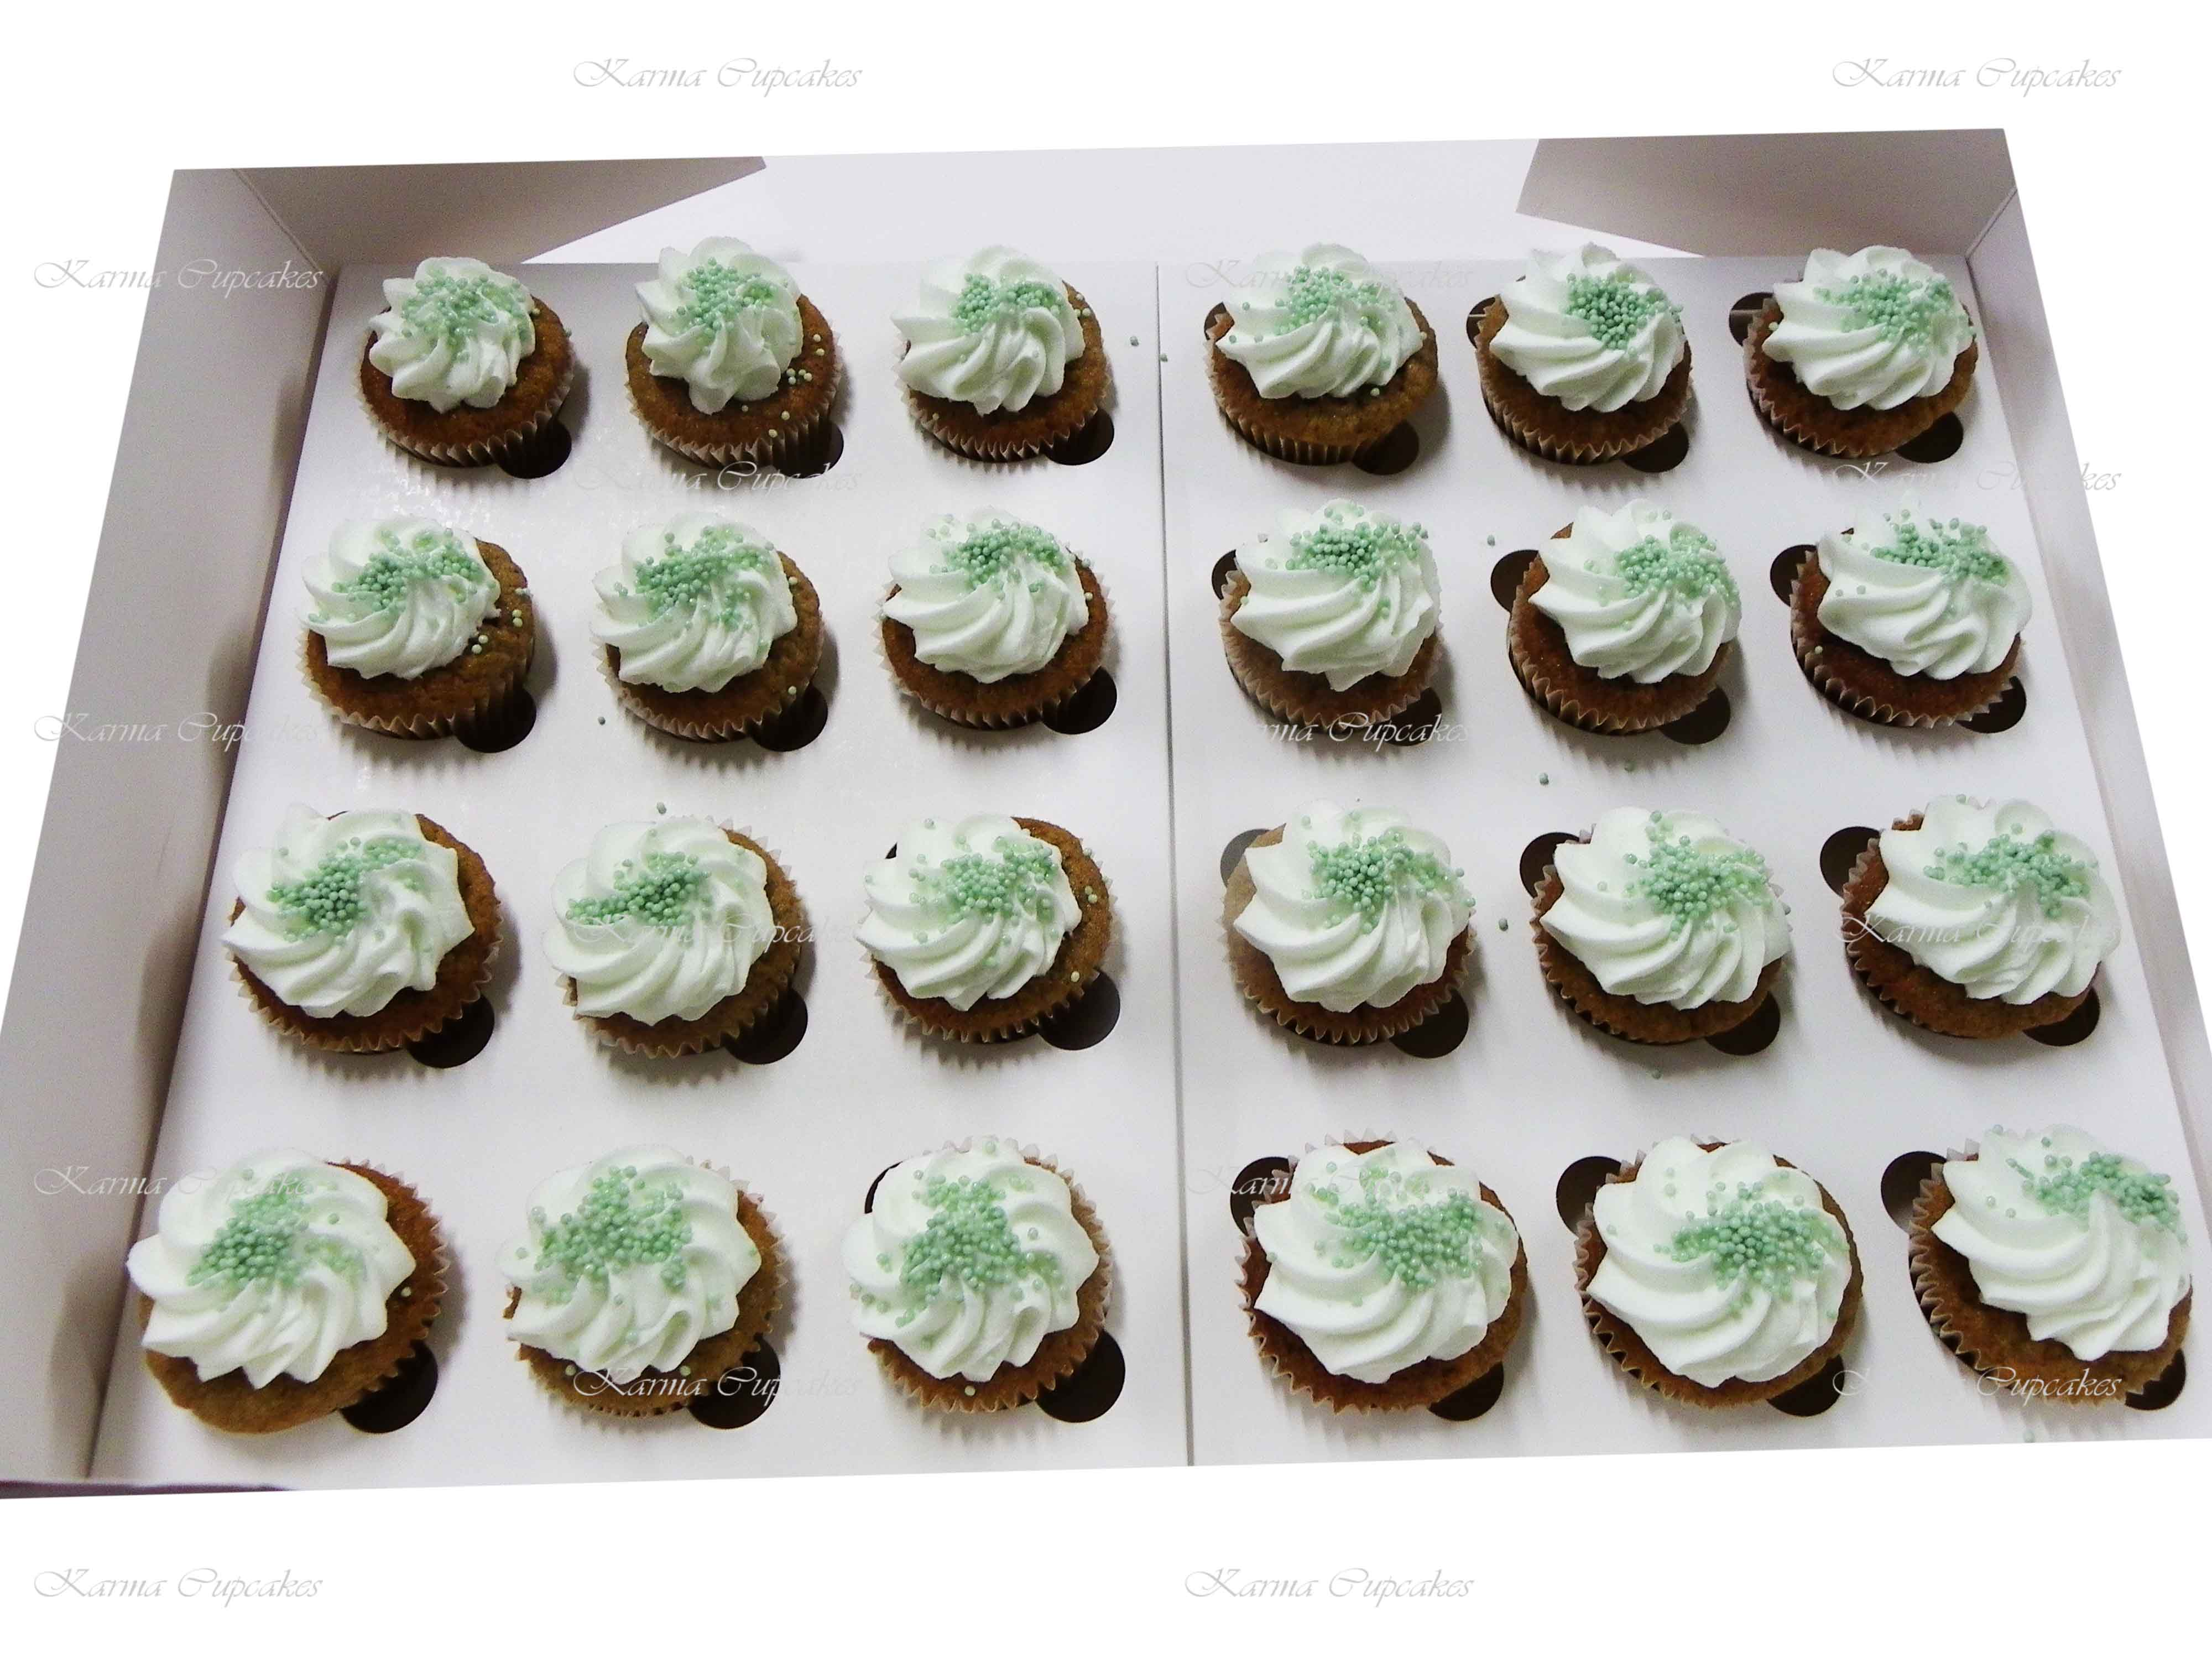 Classic Mini Cupcakes with a traditional swirl of buttercream icing